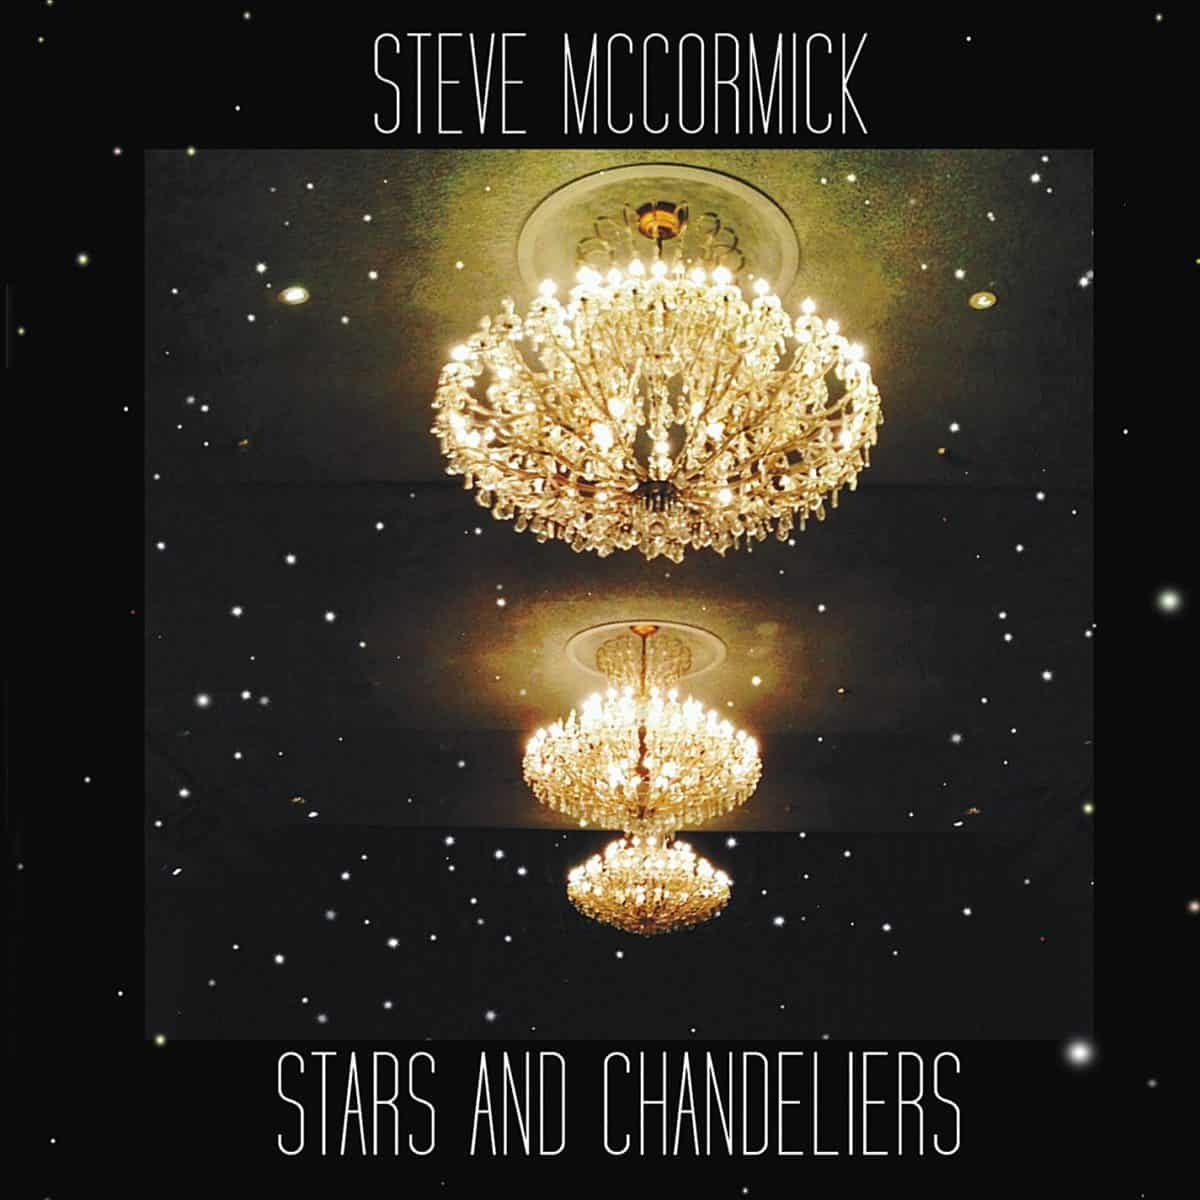 Steve McCormick – Stars and Chandeliers